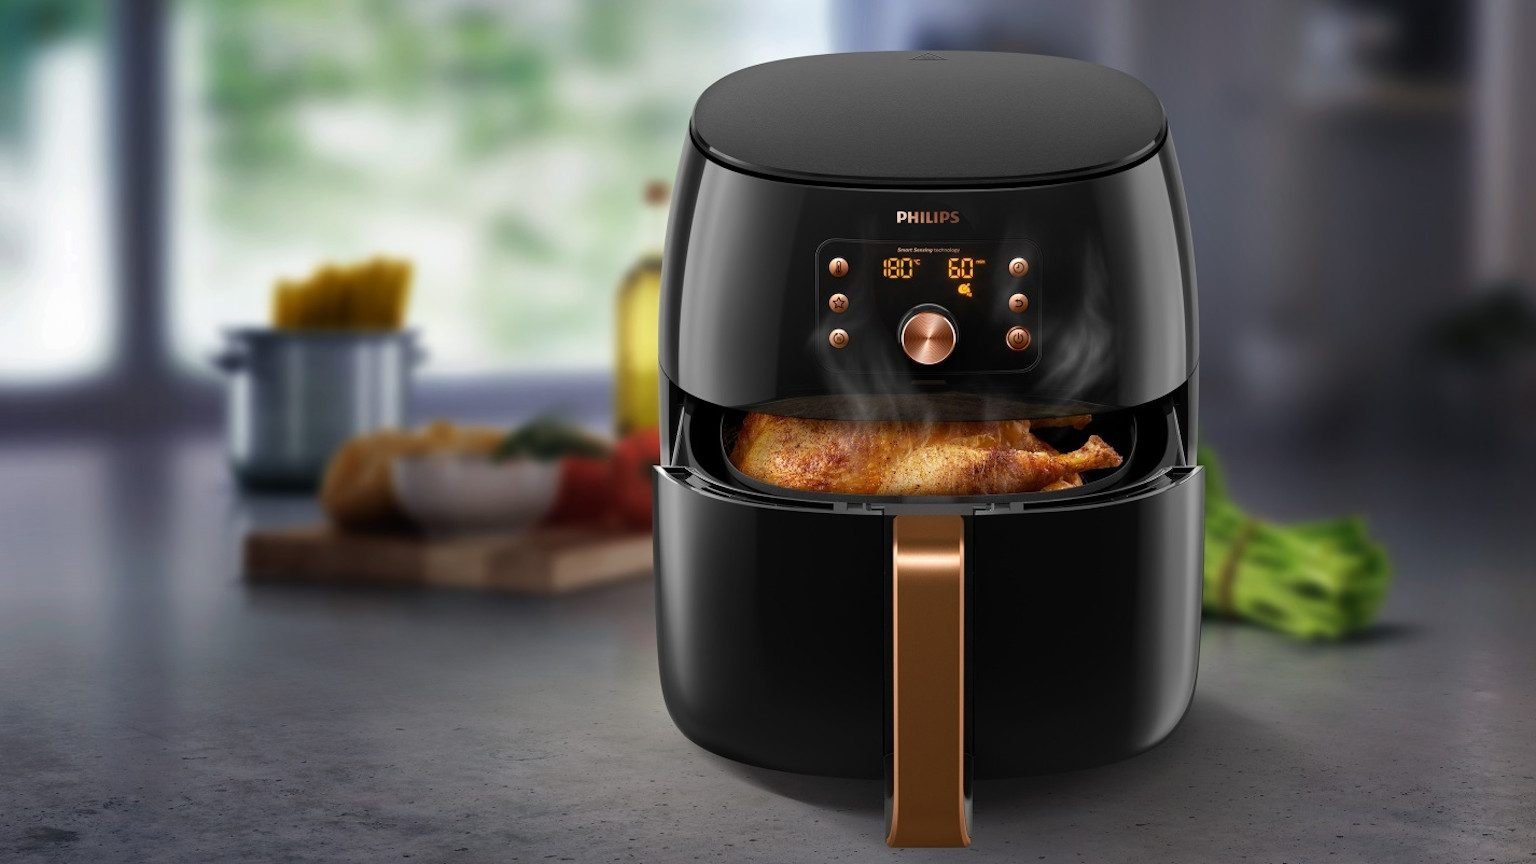 Philips air fryer on kitchen bench.